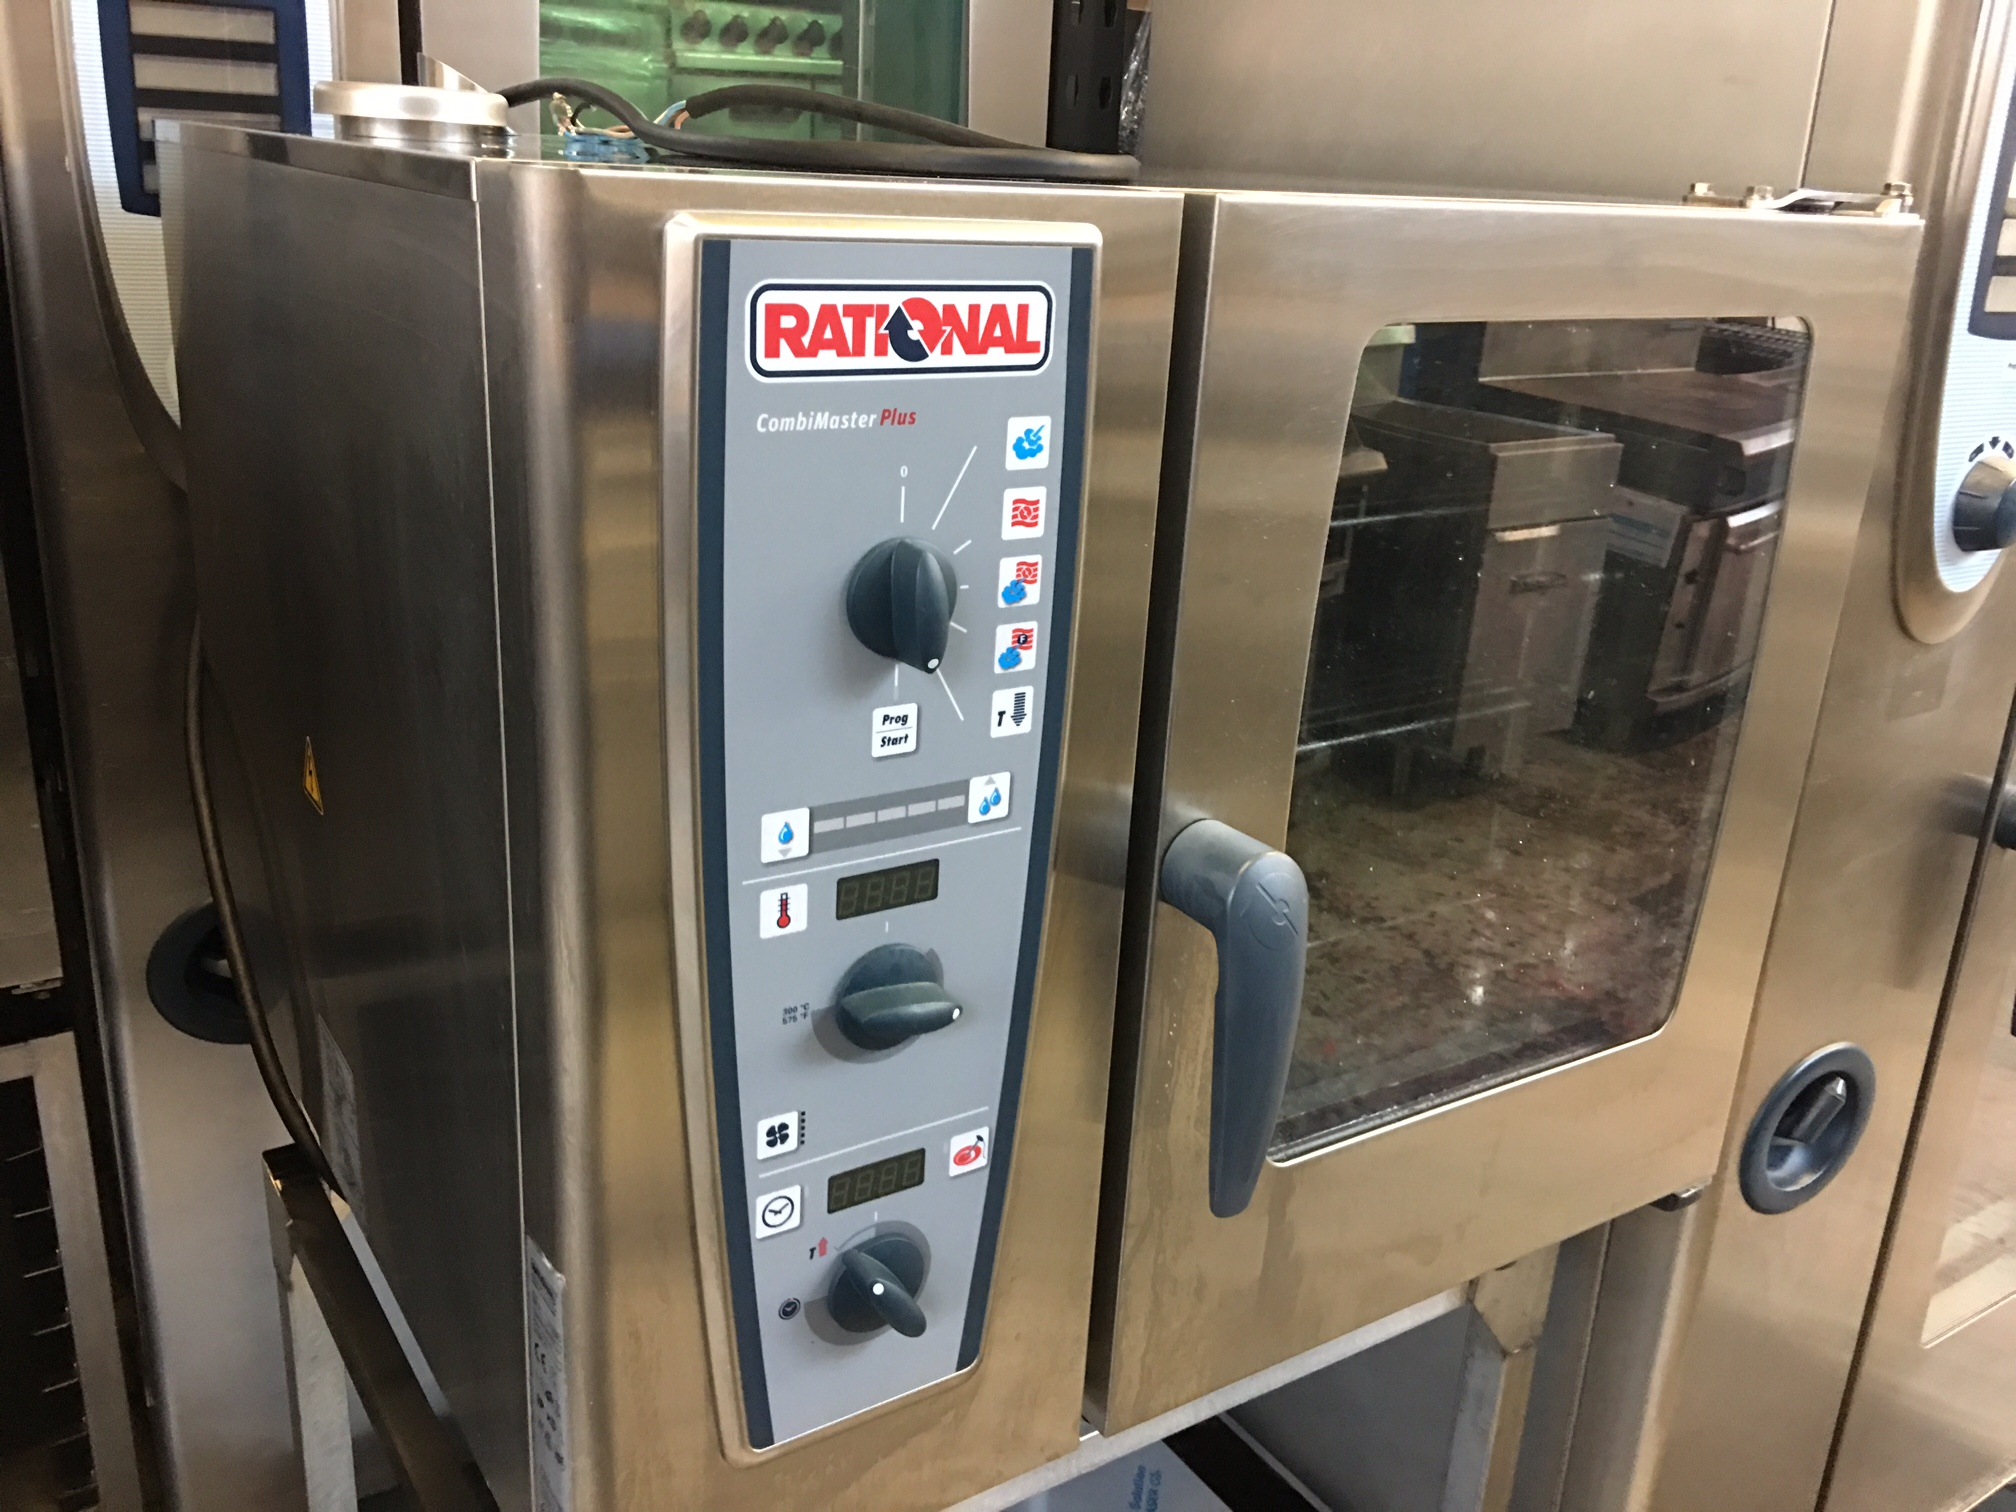 rational combi oven service manual pdf